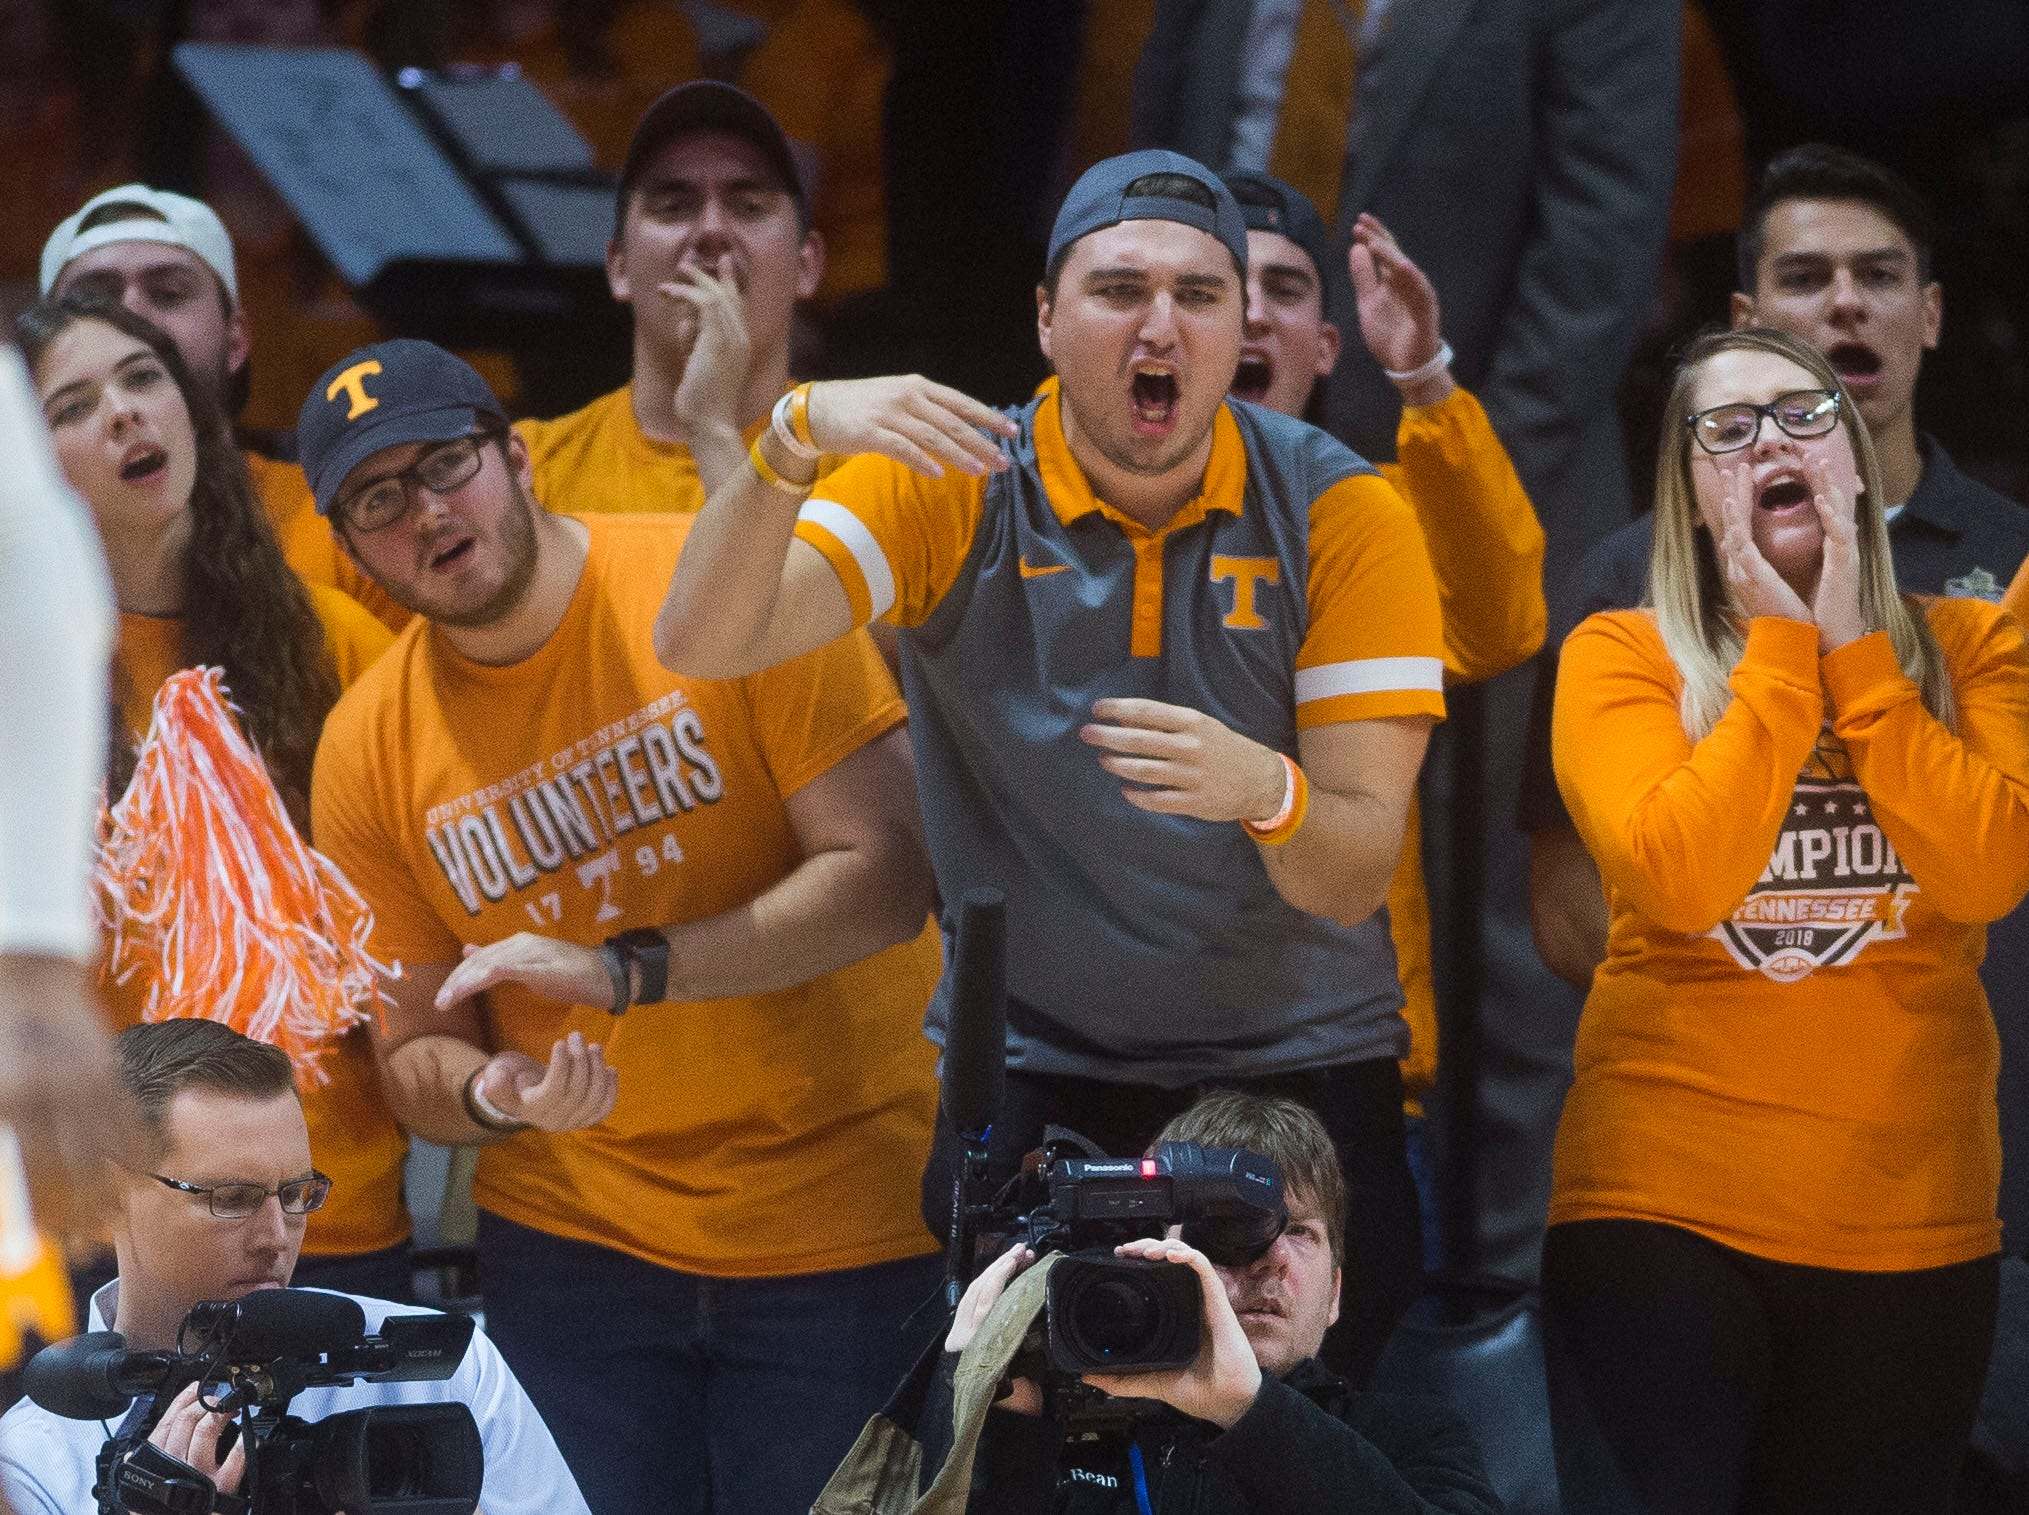 Tennessee fans taunt Arkansas during a NCAA men's basketball game between Tennessee and Arkansas at Thompson-Boling Arena Tuesday, Jan. 15, 2019.